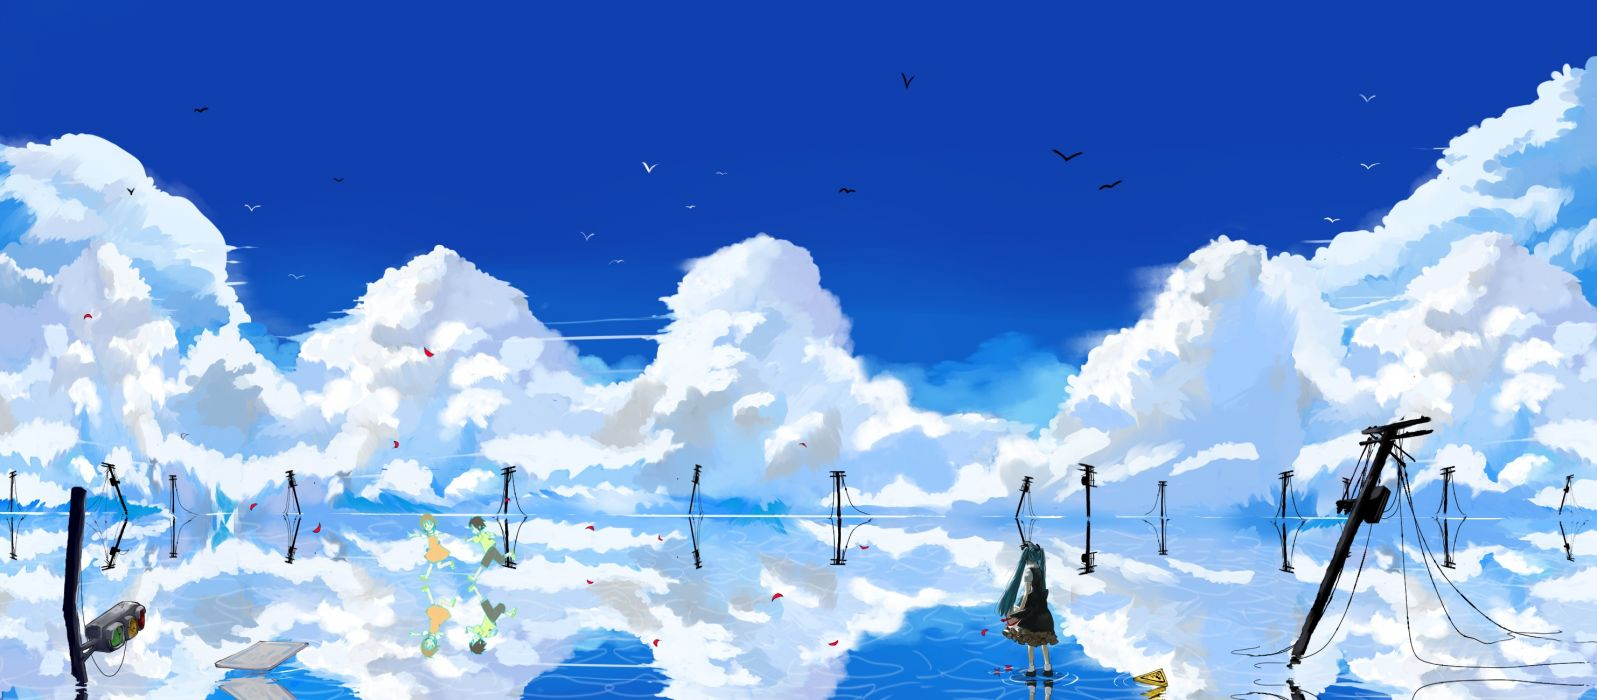 Water abstract blue clouds landscapes vocaloid hatsune miku fantasy art twintails anime run reflections anime girls blue skies wallpaper